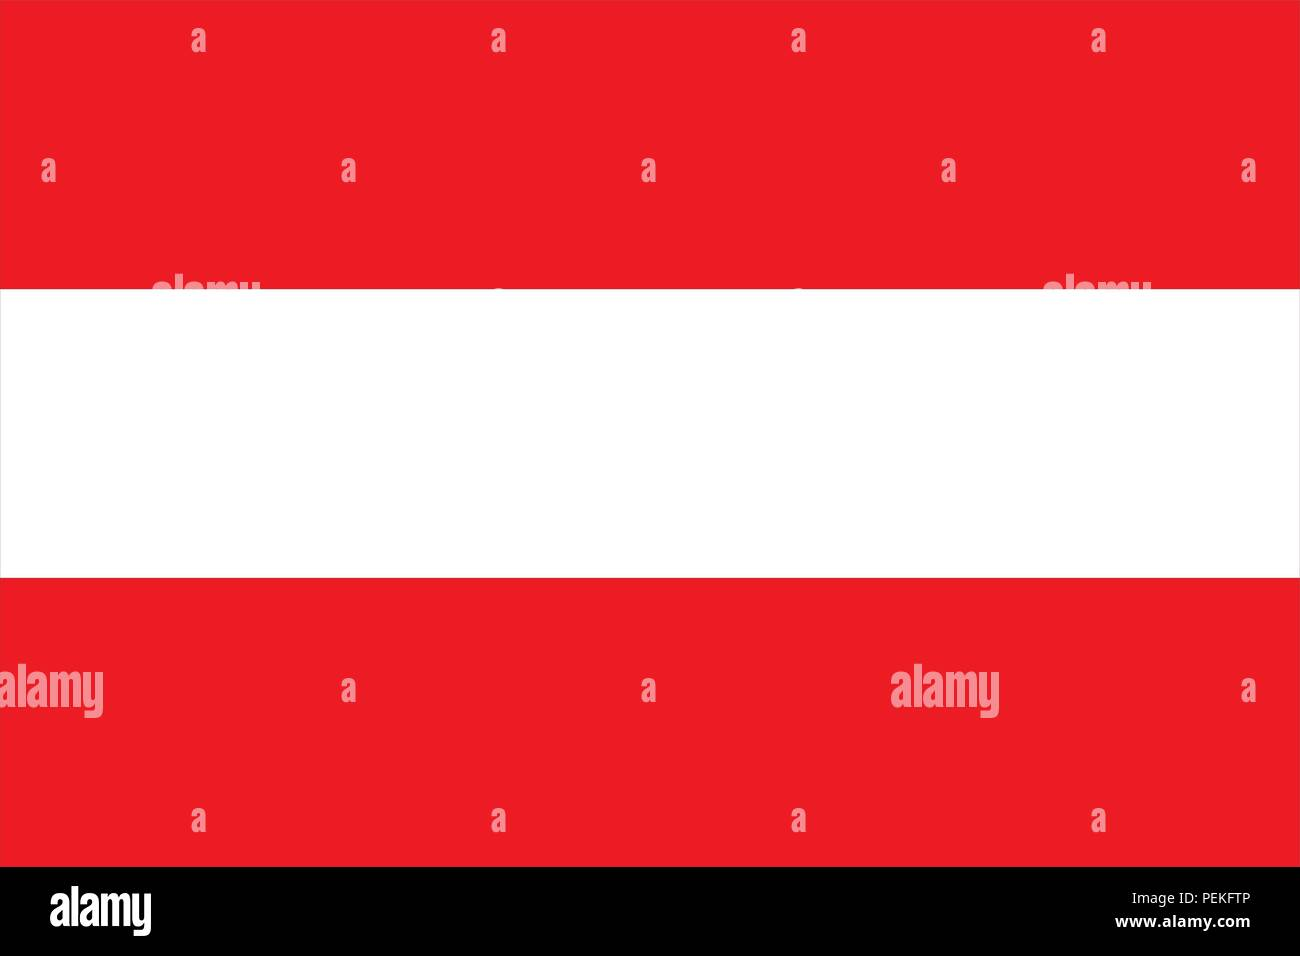 Flag of Austria Flagge Österreichs triband red white red - Stock Vector